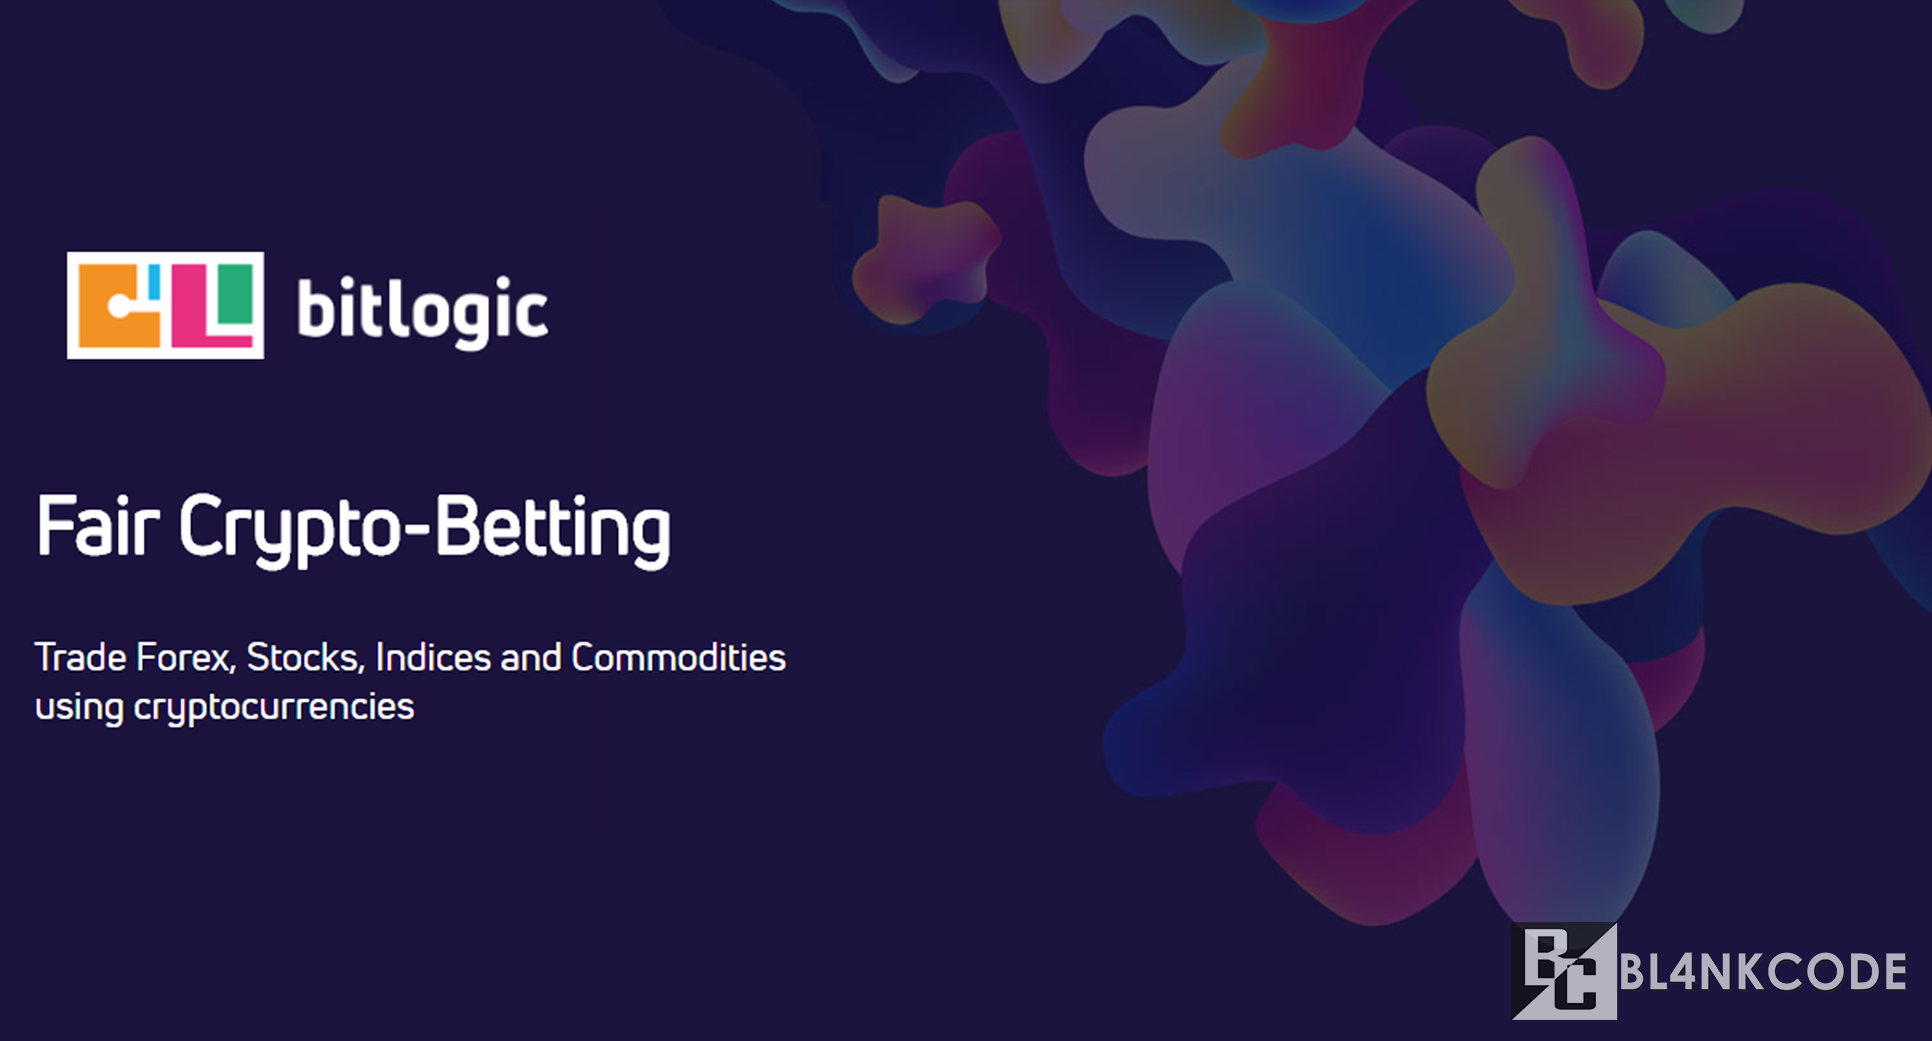 Bitlogic.cc — Fair Crypto-Betting Platform - Bl4nkcode